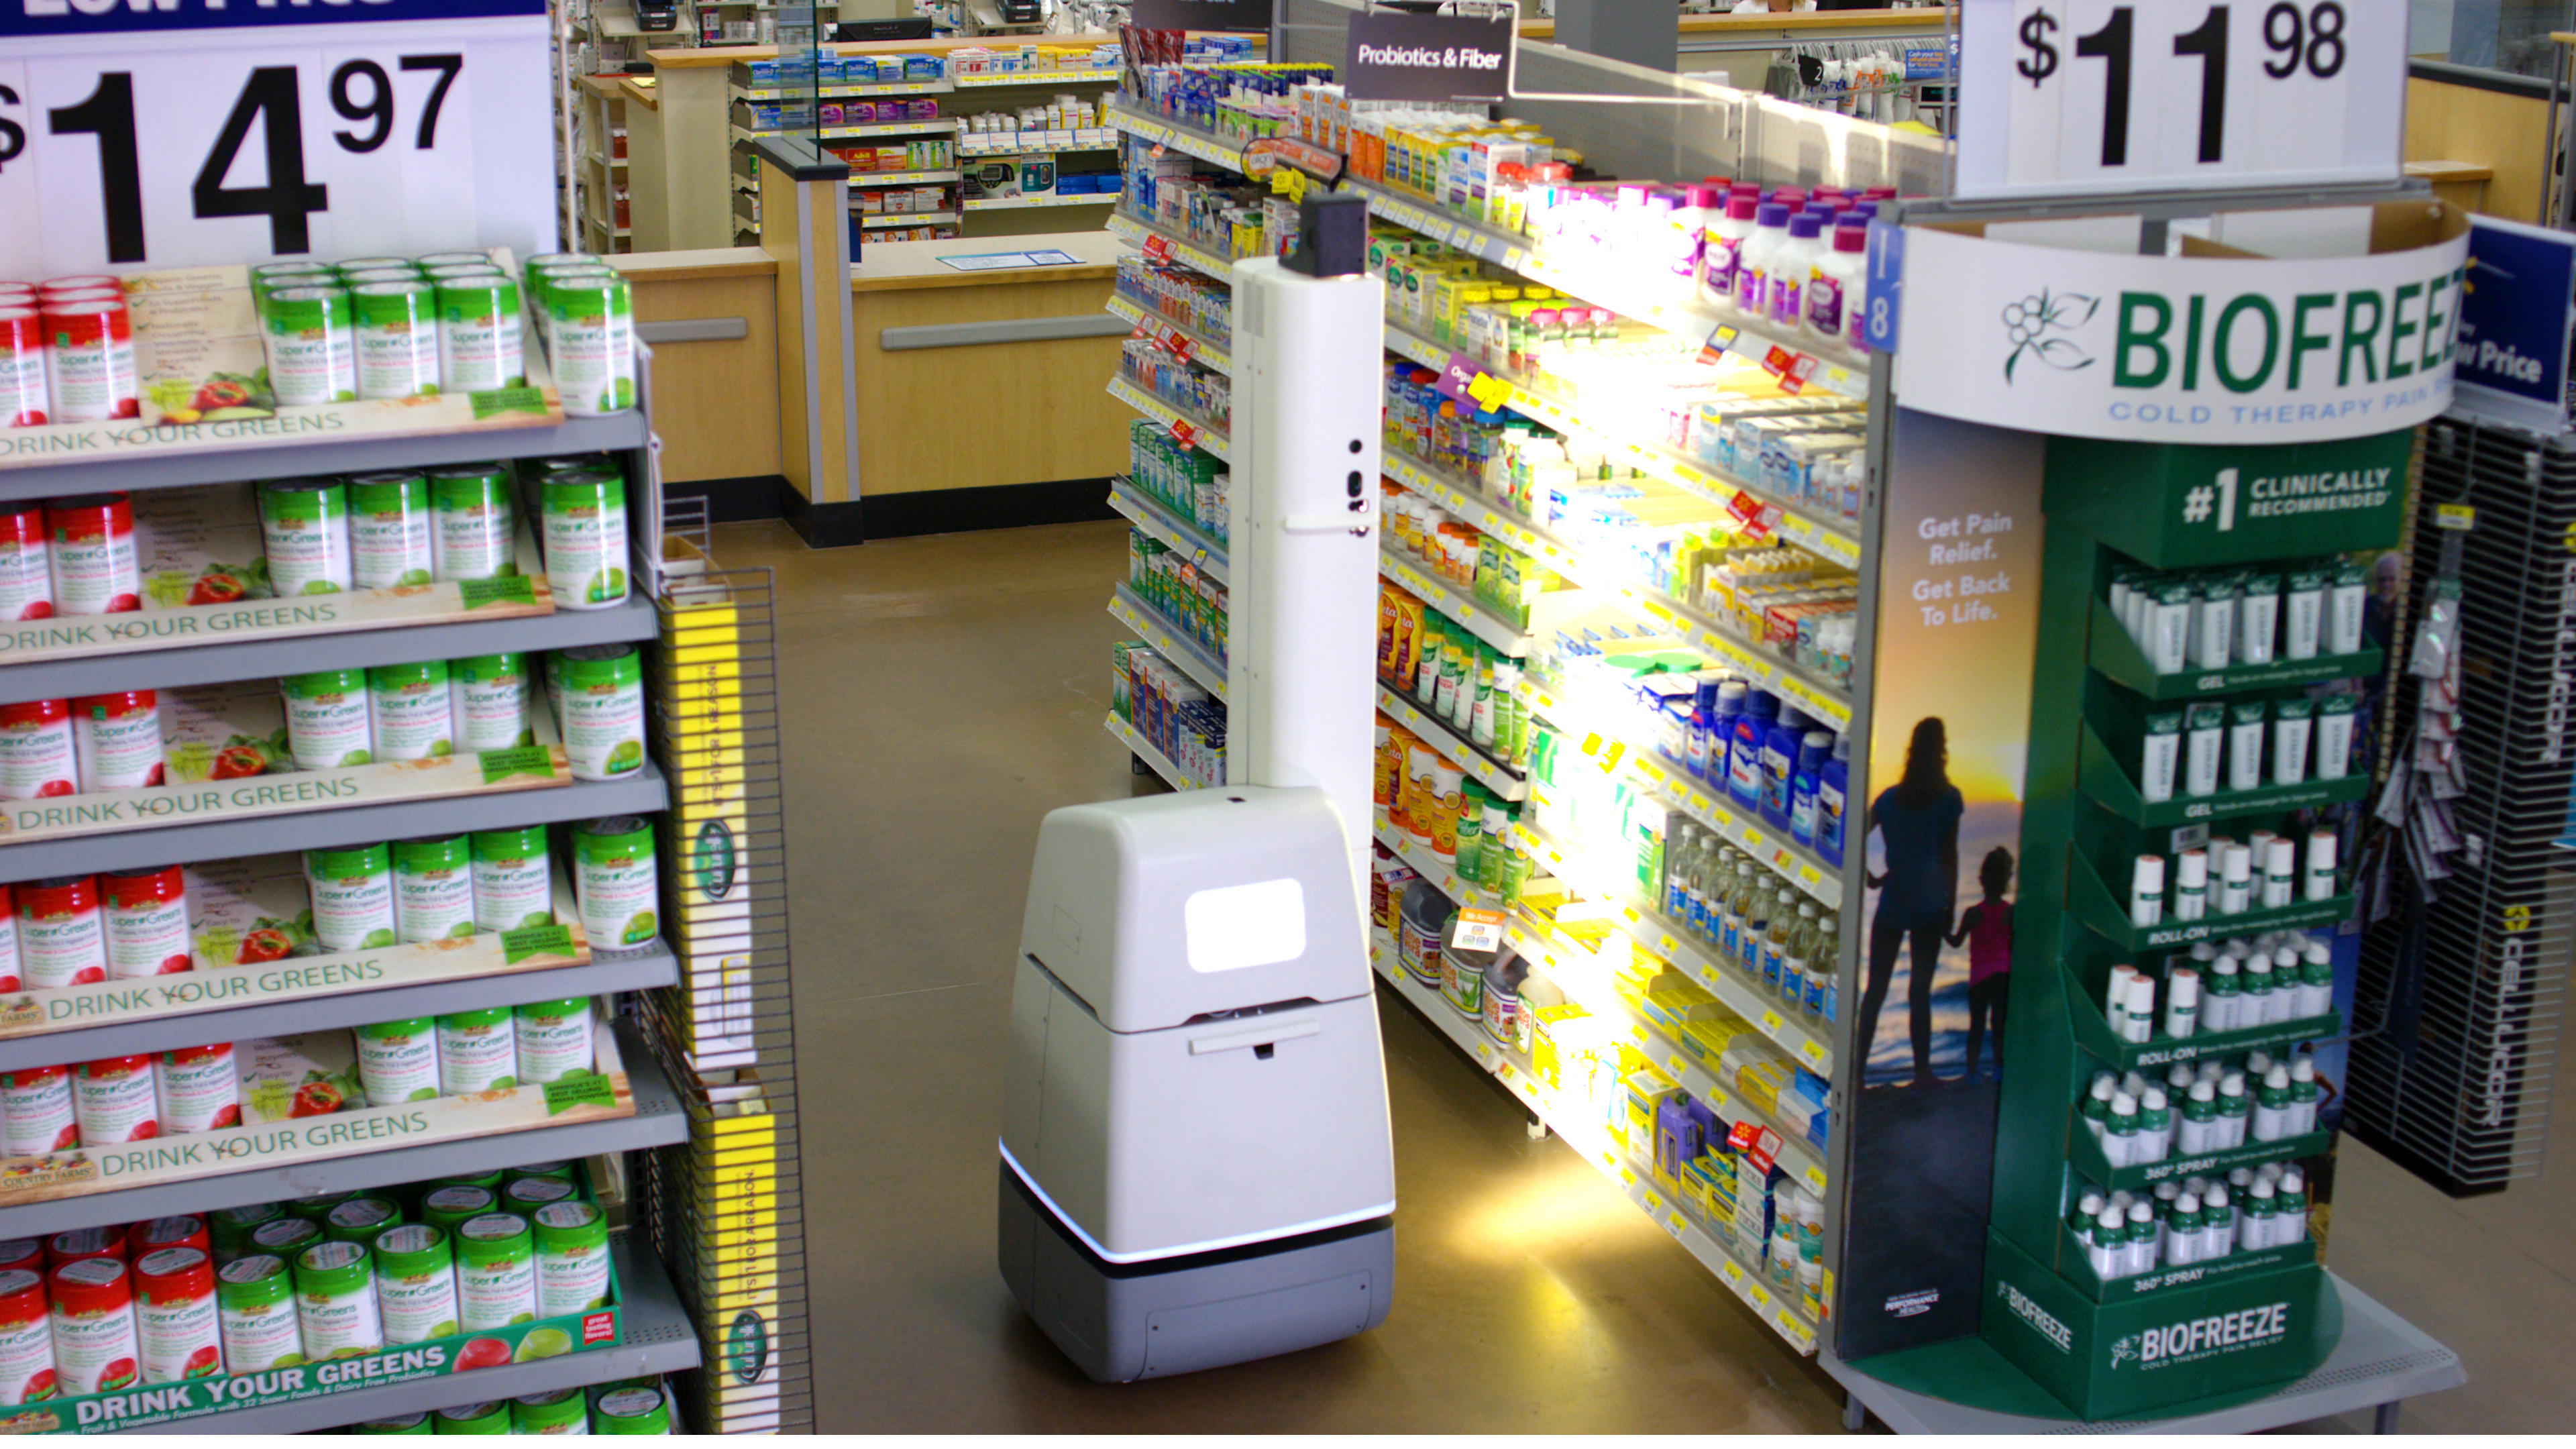 An Autonomous Shelf Scanner scans products in a Walmart pharmacy